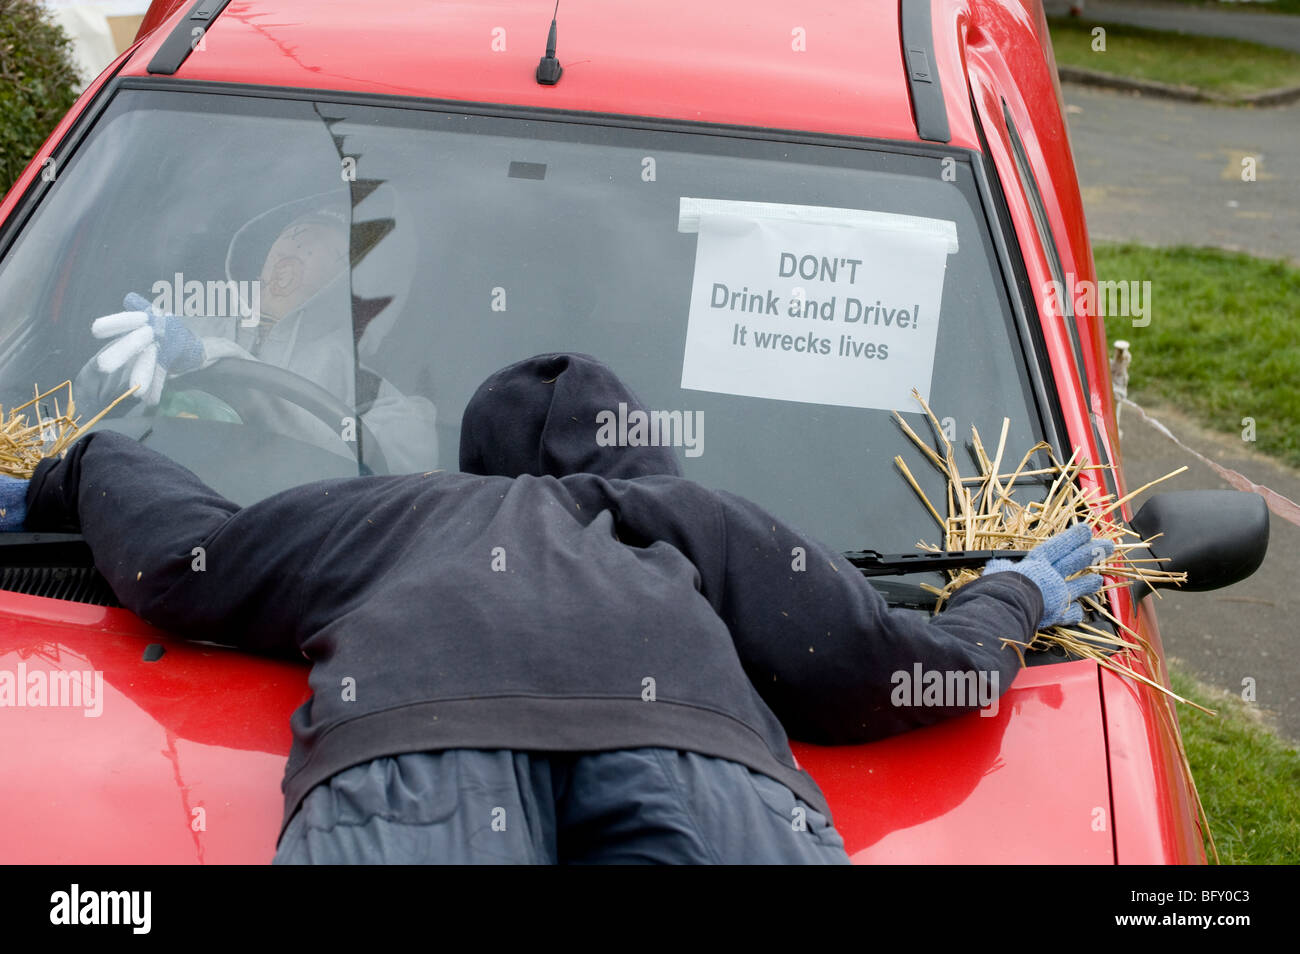 Scarecrows being used to illustrate the dangers of drinking and driving. - Stock Image